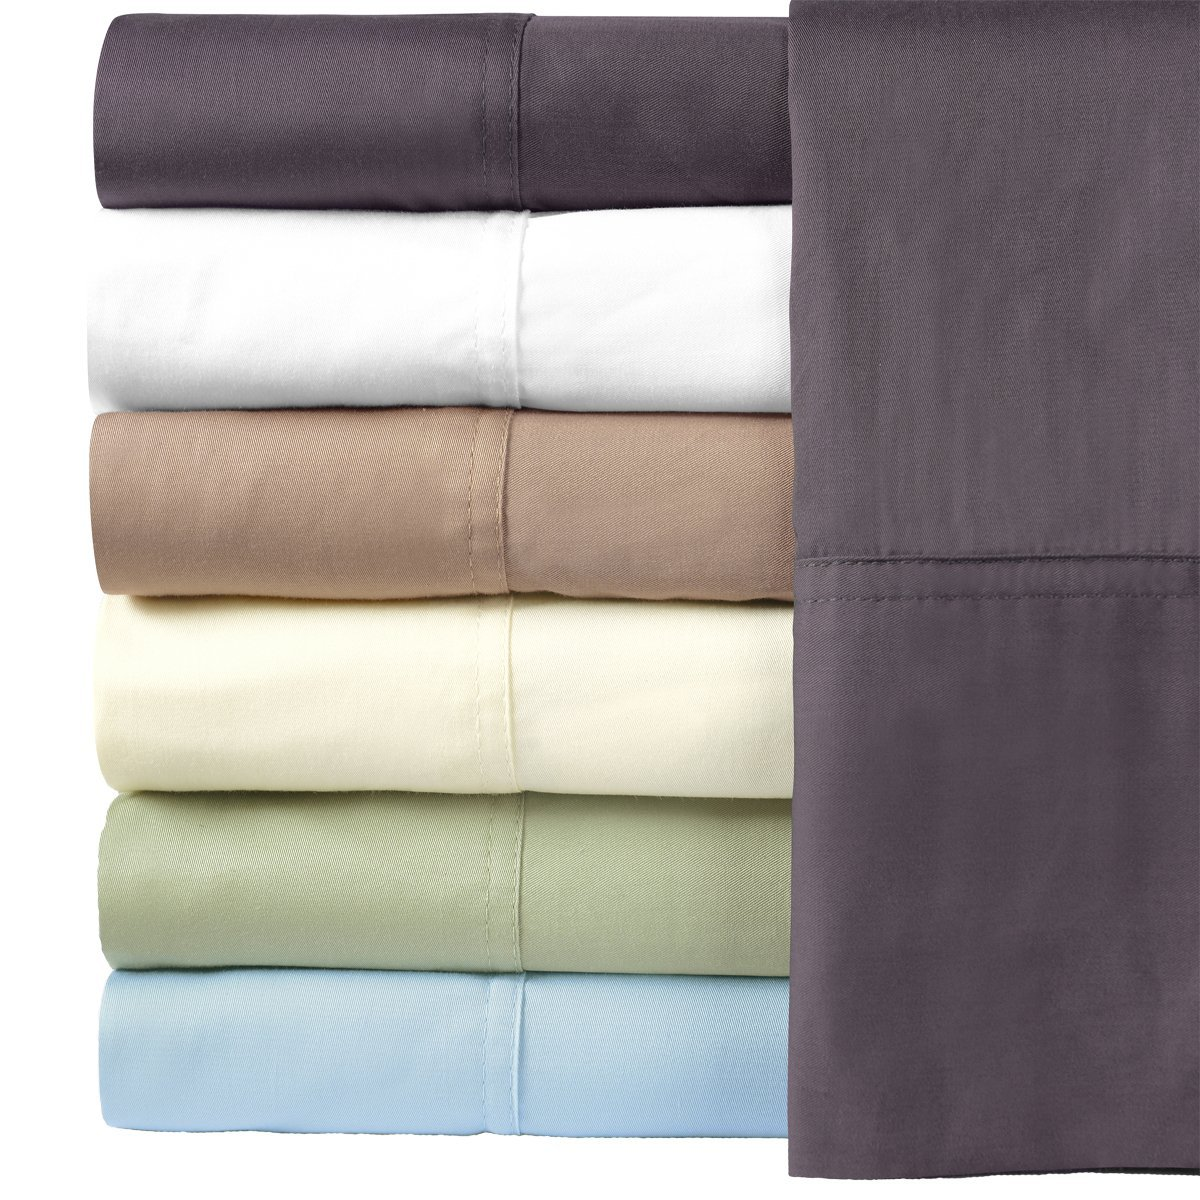 Royal Hotel Silky Soft Bamboo Cotton Sheet Set, 100% Bamboo-Cotton Bed Sheets, Top Split King Size, White